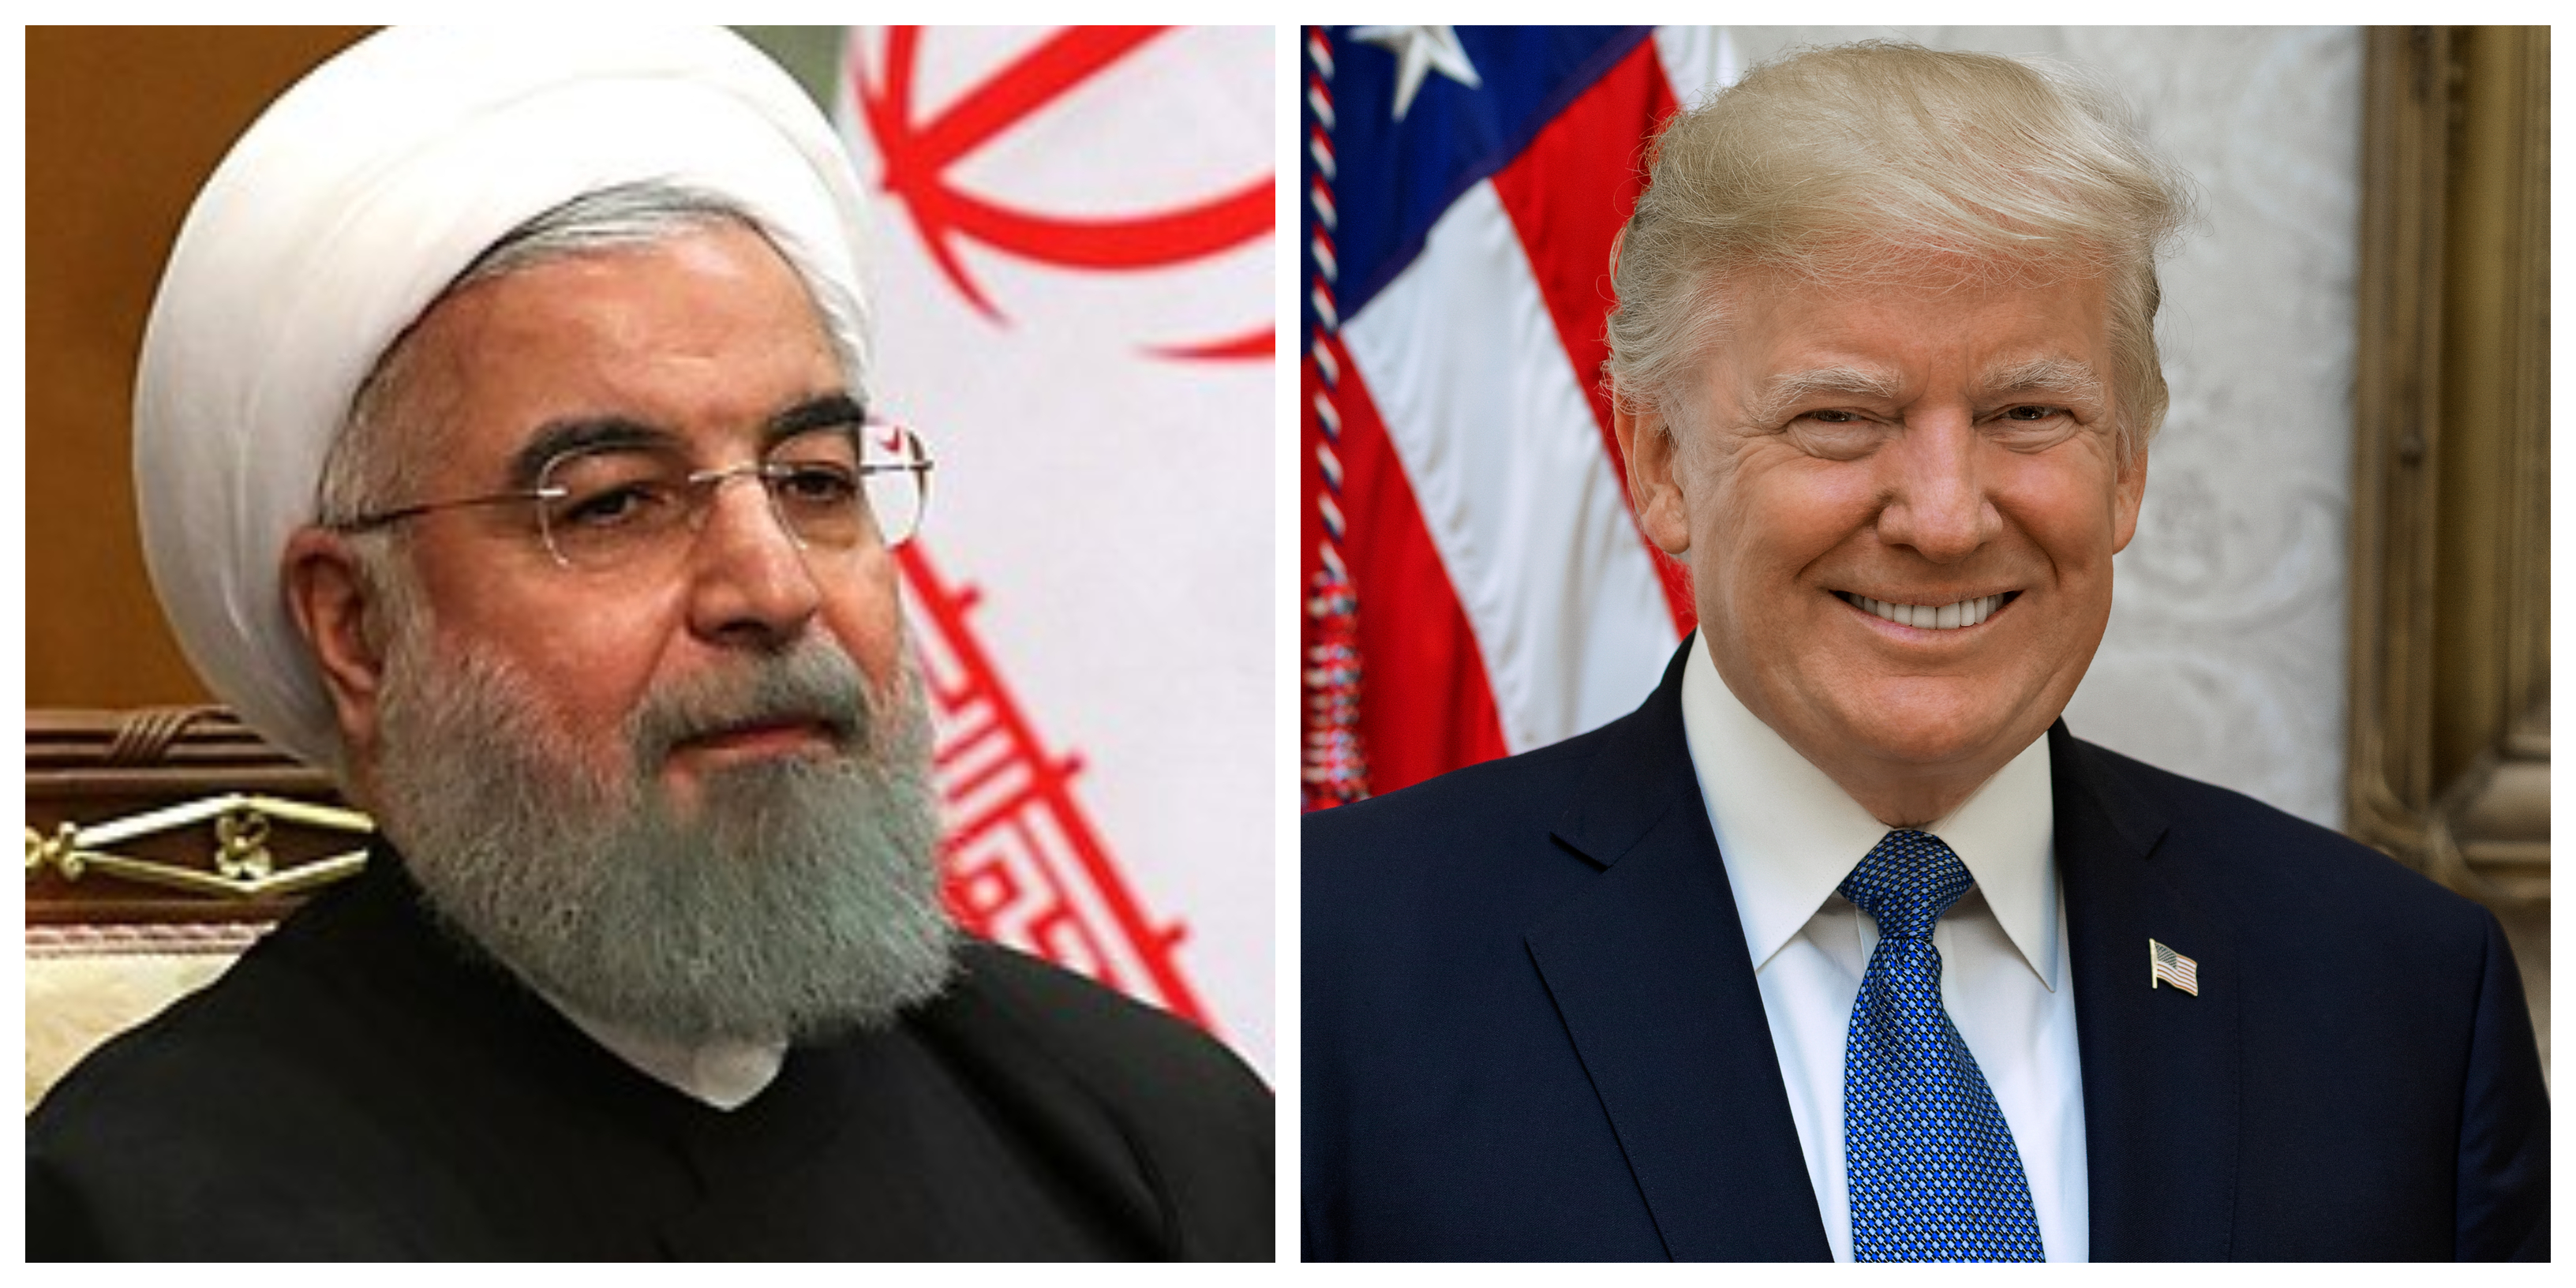 Iranian President Rouhani, left, Donald J. Trump, right